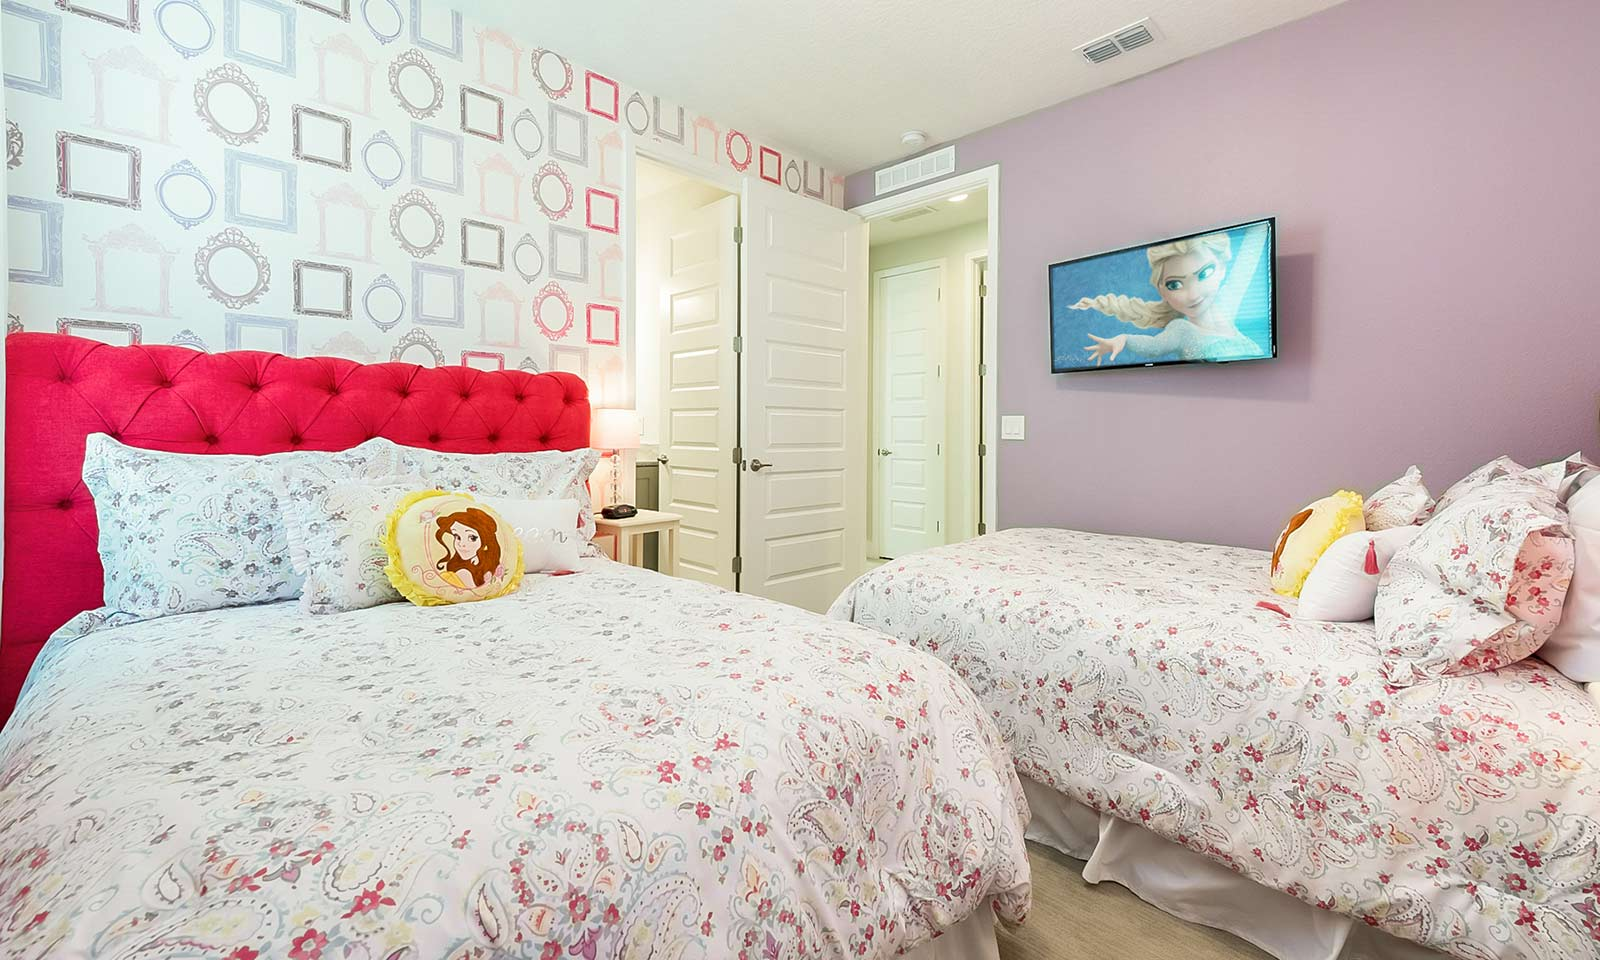 The Colorful Cottage-213364